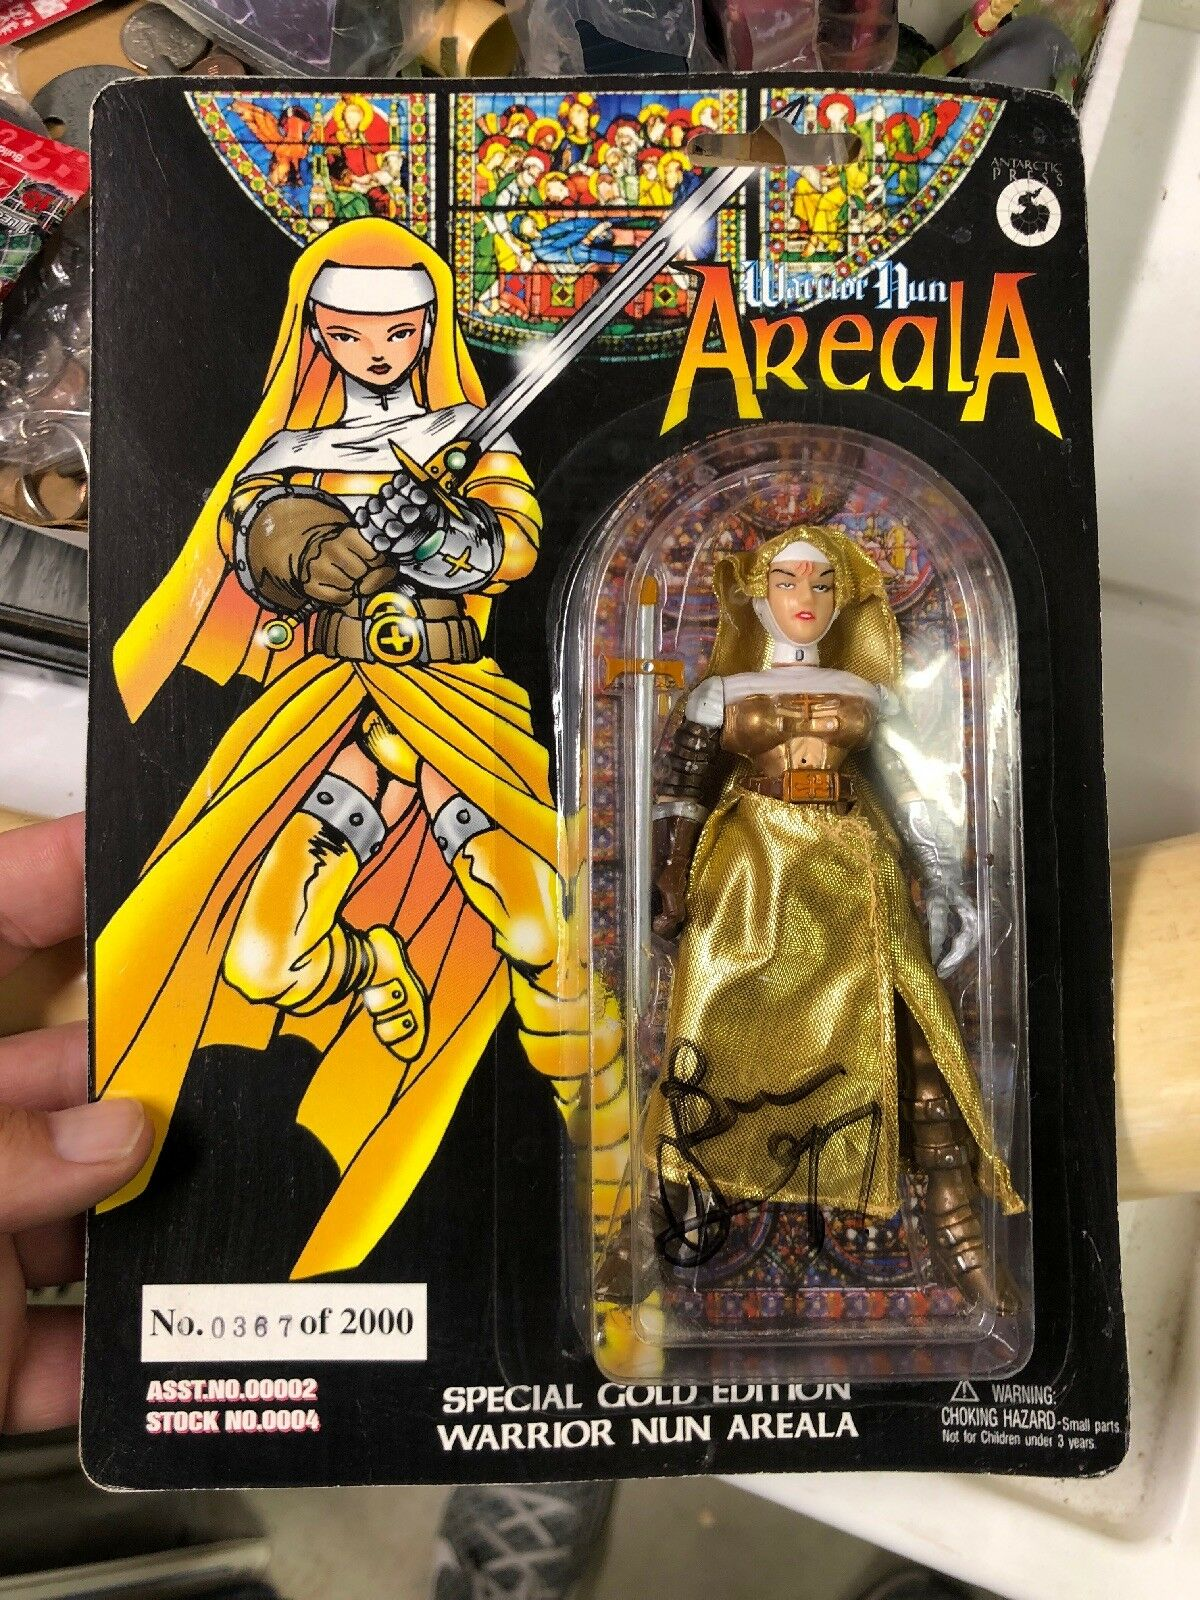 1997 WARRIOR NUN AREALA FIGURE Signed By Ben Dunn Limited gold Edition 367 2000